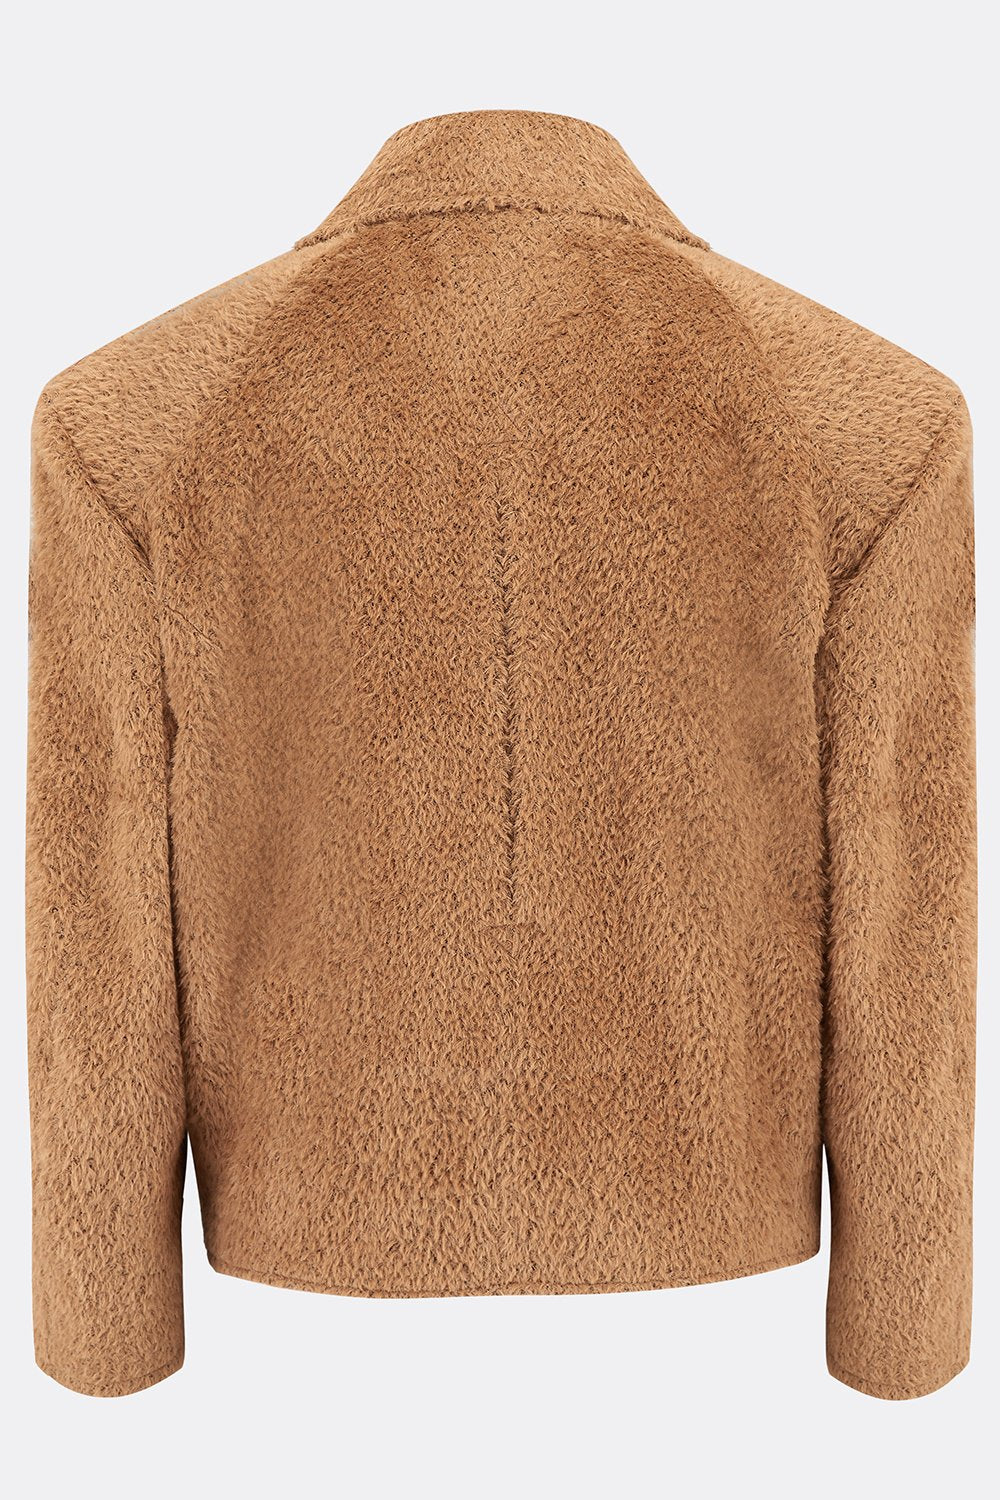 HENCHMAN JACKET IN BROWN ALPACA-menswear-A Child Of The Jago